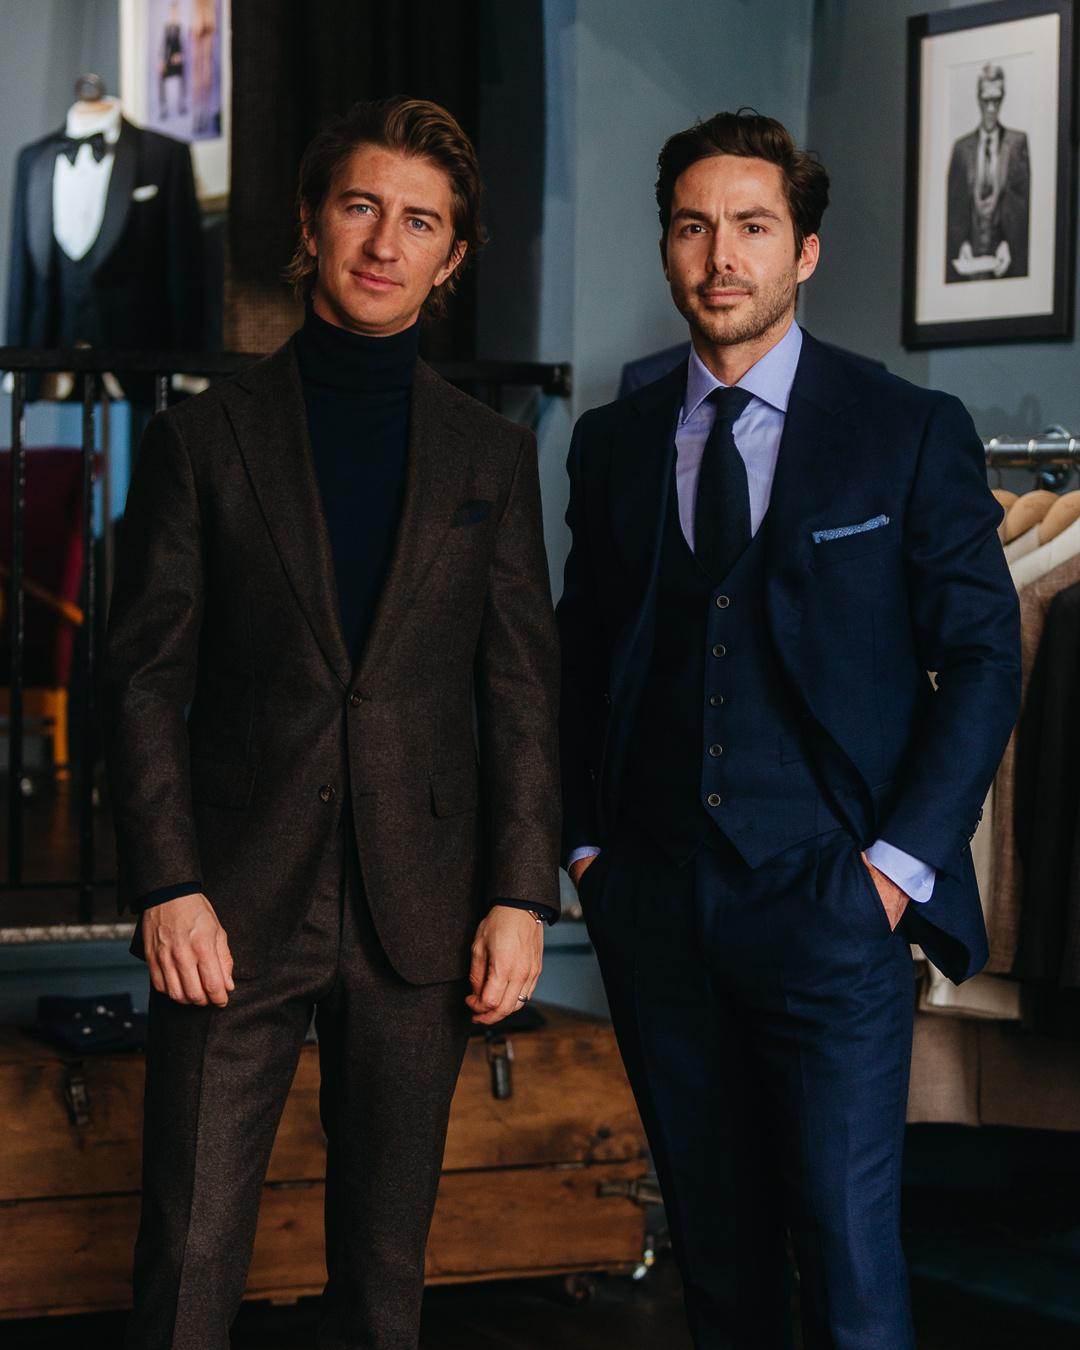 Shaking Up London's Bespoke Solutions: Jack Stammers And Will Davison Talk The Art Of Tailored Suits And Why They Launched Jack Davison Bespoke